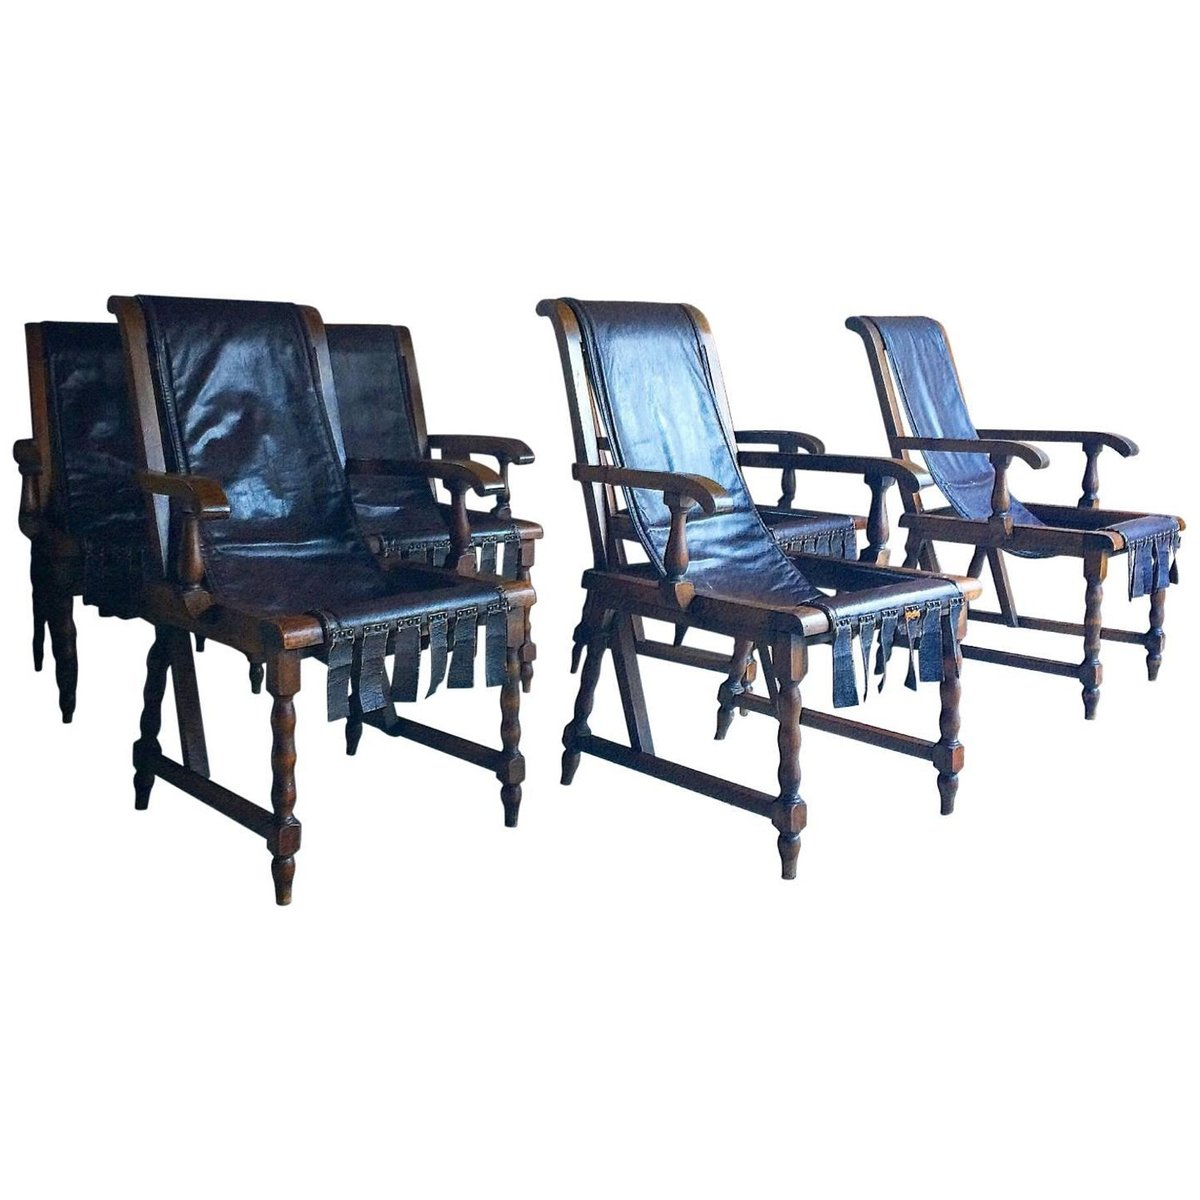 Vintage dining chairs set of 6 for sale at pamono for Set of 6 dining chairs